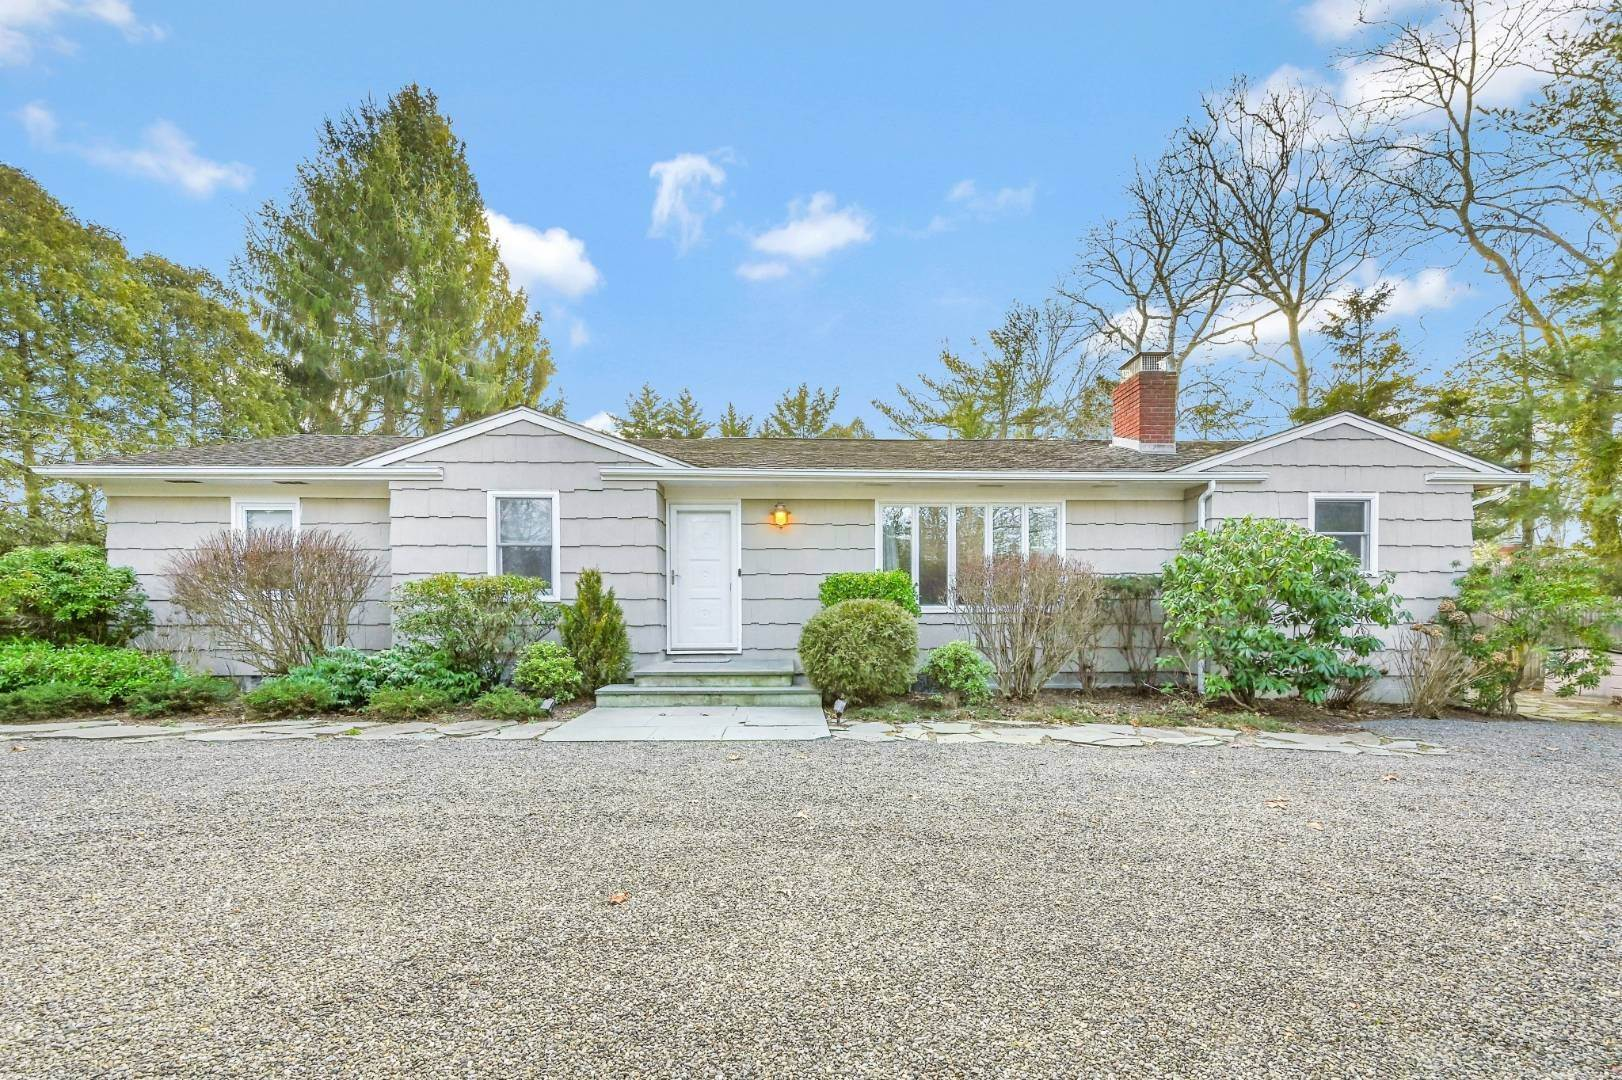 Single Family Home for Sale at Charming Ranch South Of The Highway 3 Row Off Baycrest Avenue, Westhampton, NY 11977